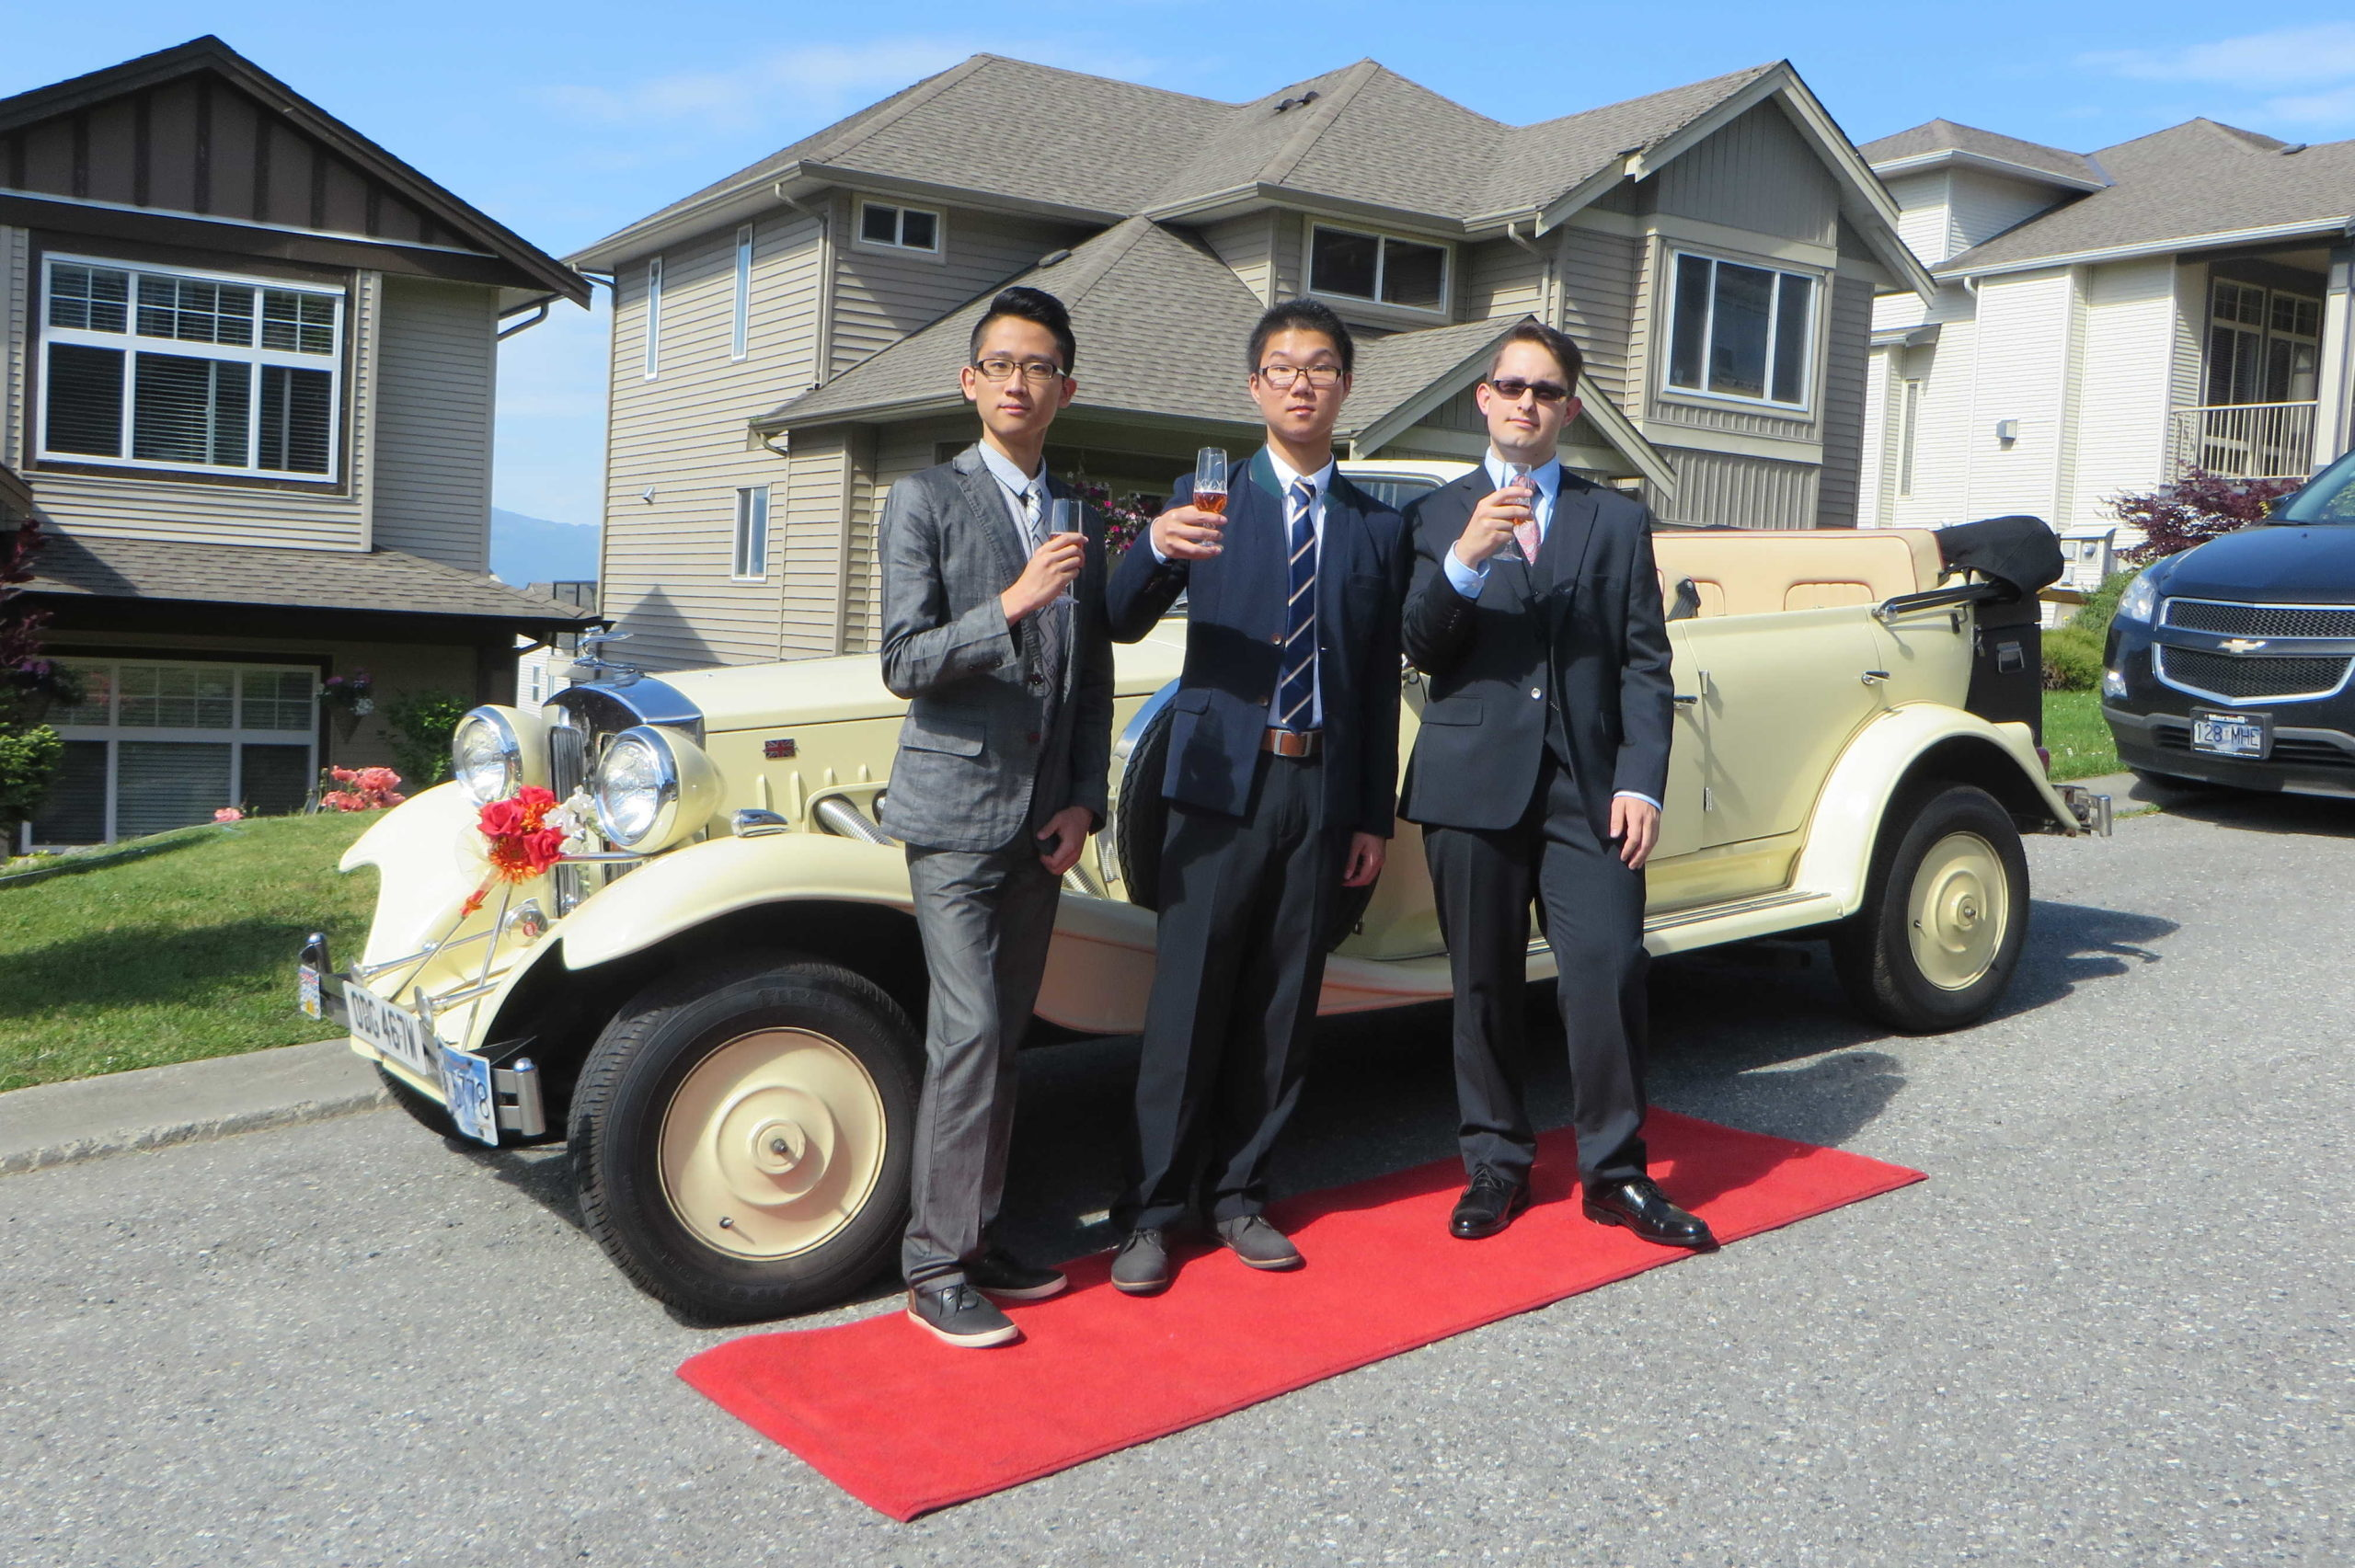 Gentlemen posing on red carpet before graduation by Vancouver Classic White Convertible Limo